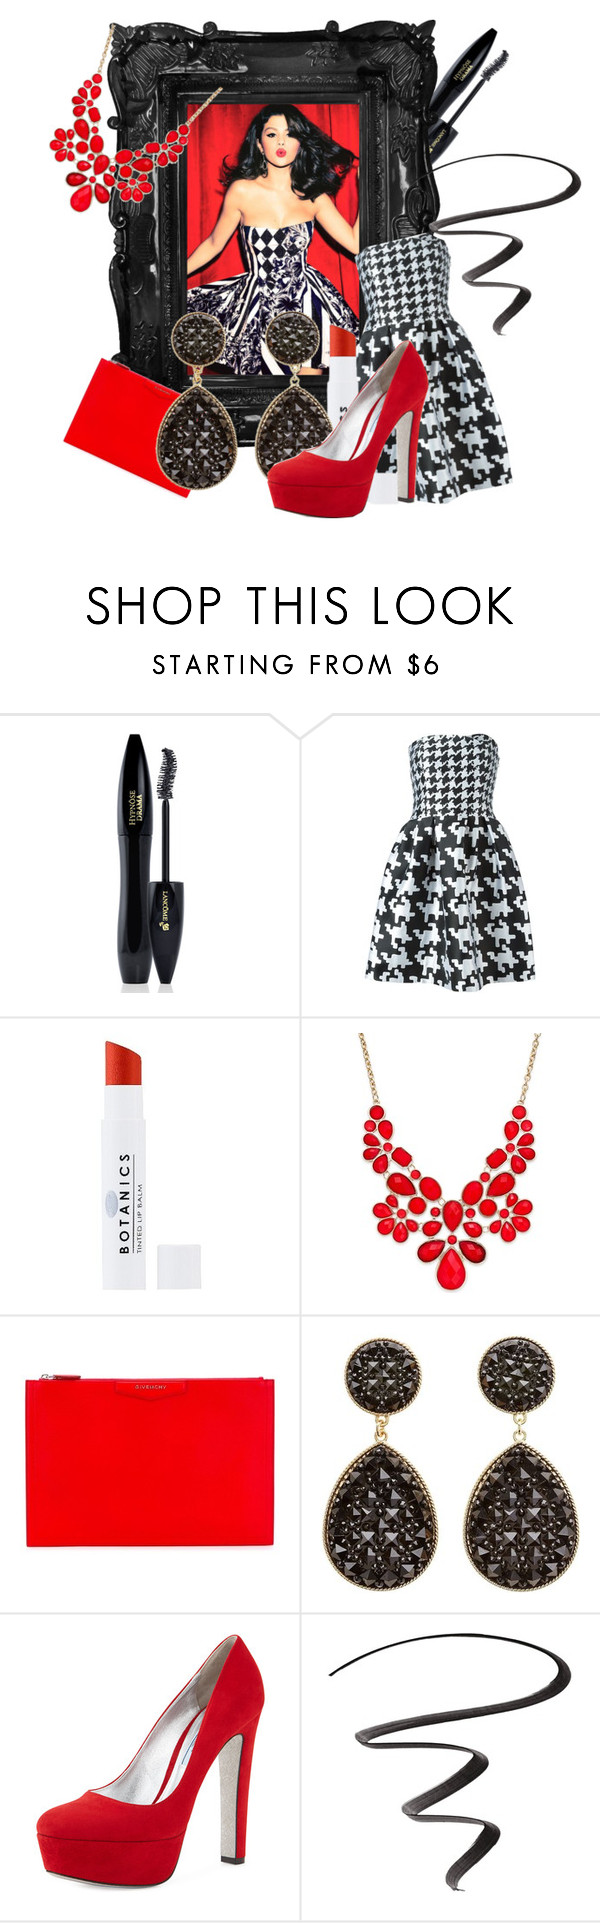 """""""Selena in Red"""" by egordon2 ❤ liked on Polyvore featuring Lancôme, Boutique Moschino, Botanics, INC International Concepts, Givenchy, Charlotte Russe, Prada, Maybelline and selenagomez"""